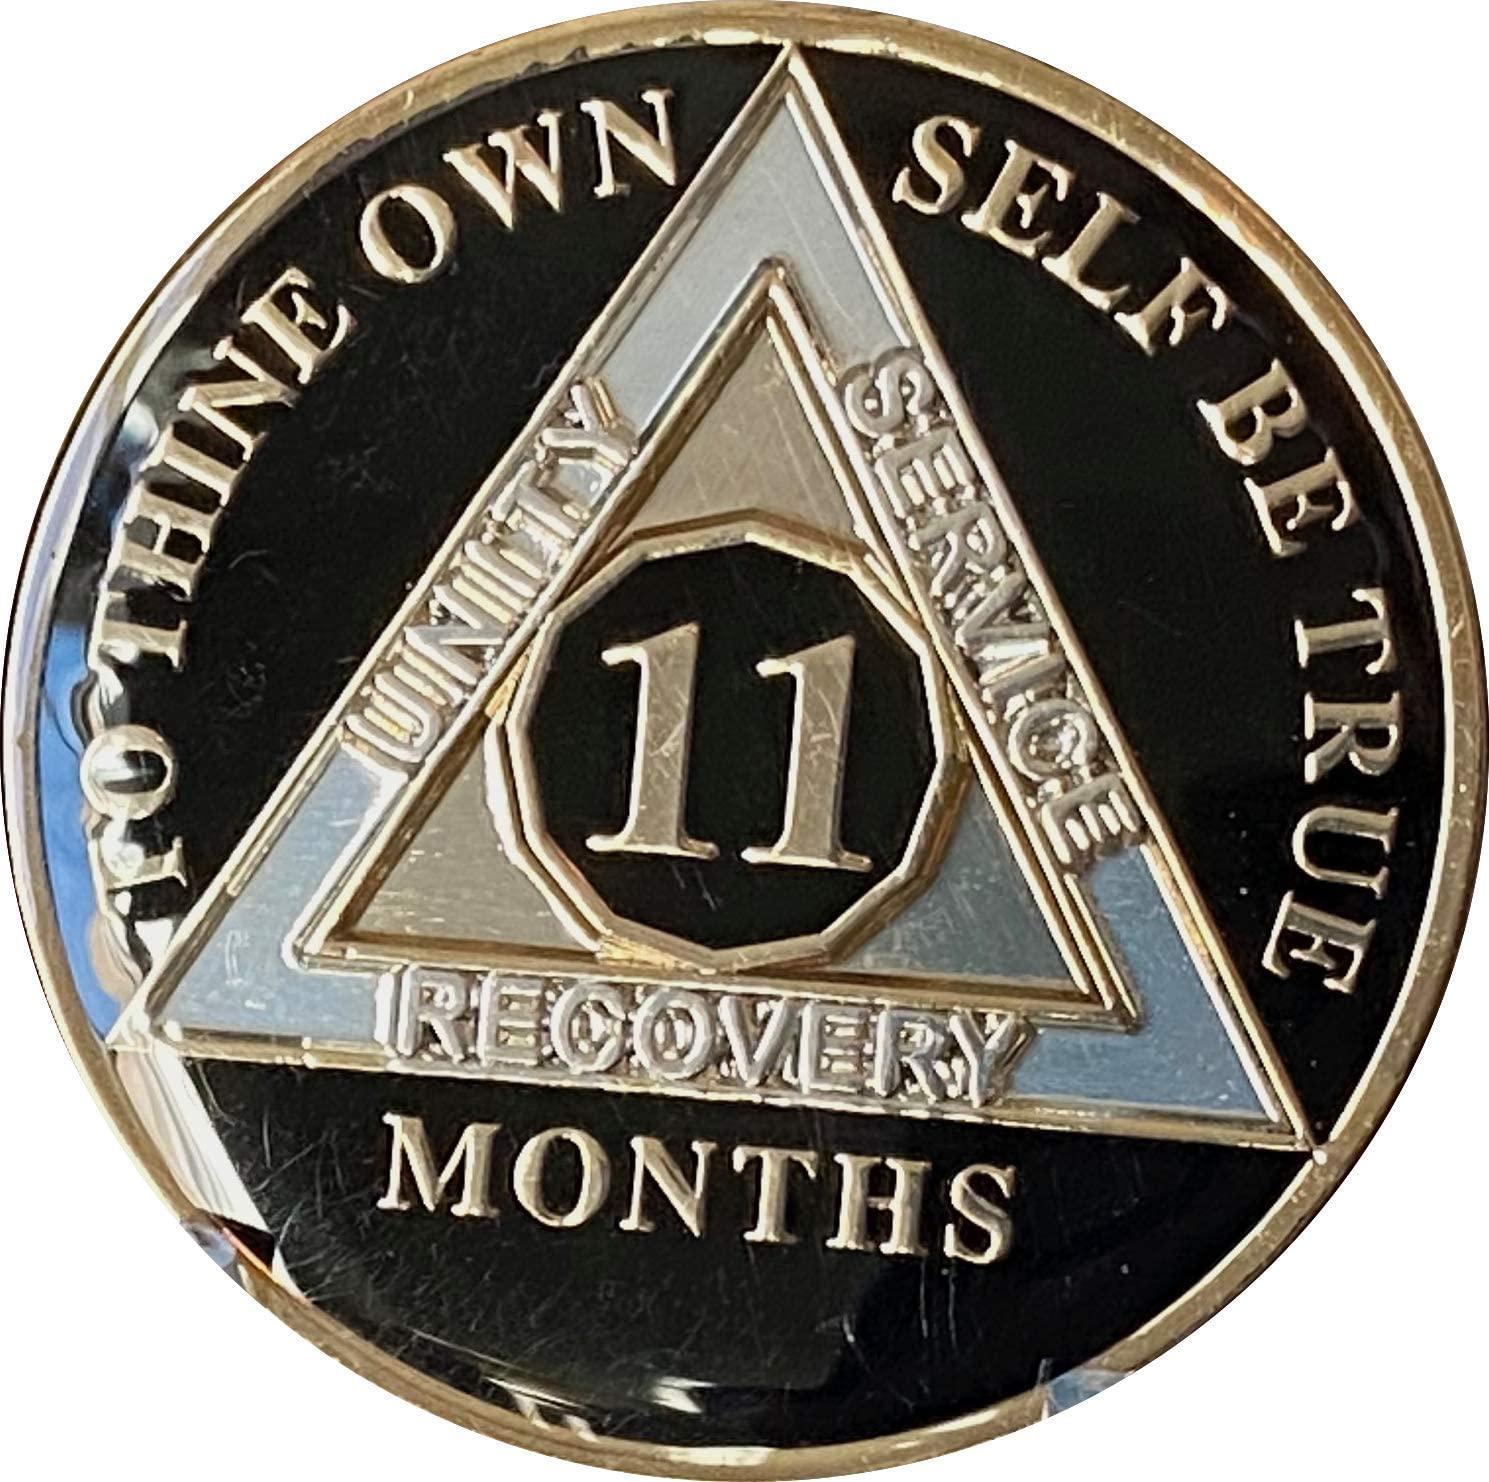 Ranger Industries 11 Month AA Medallion Glossy Classic Black Sobriety Chip